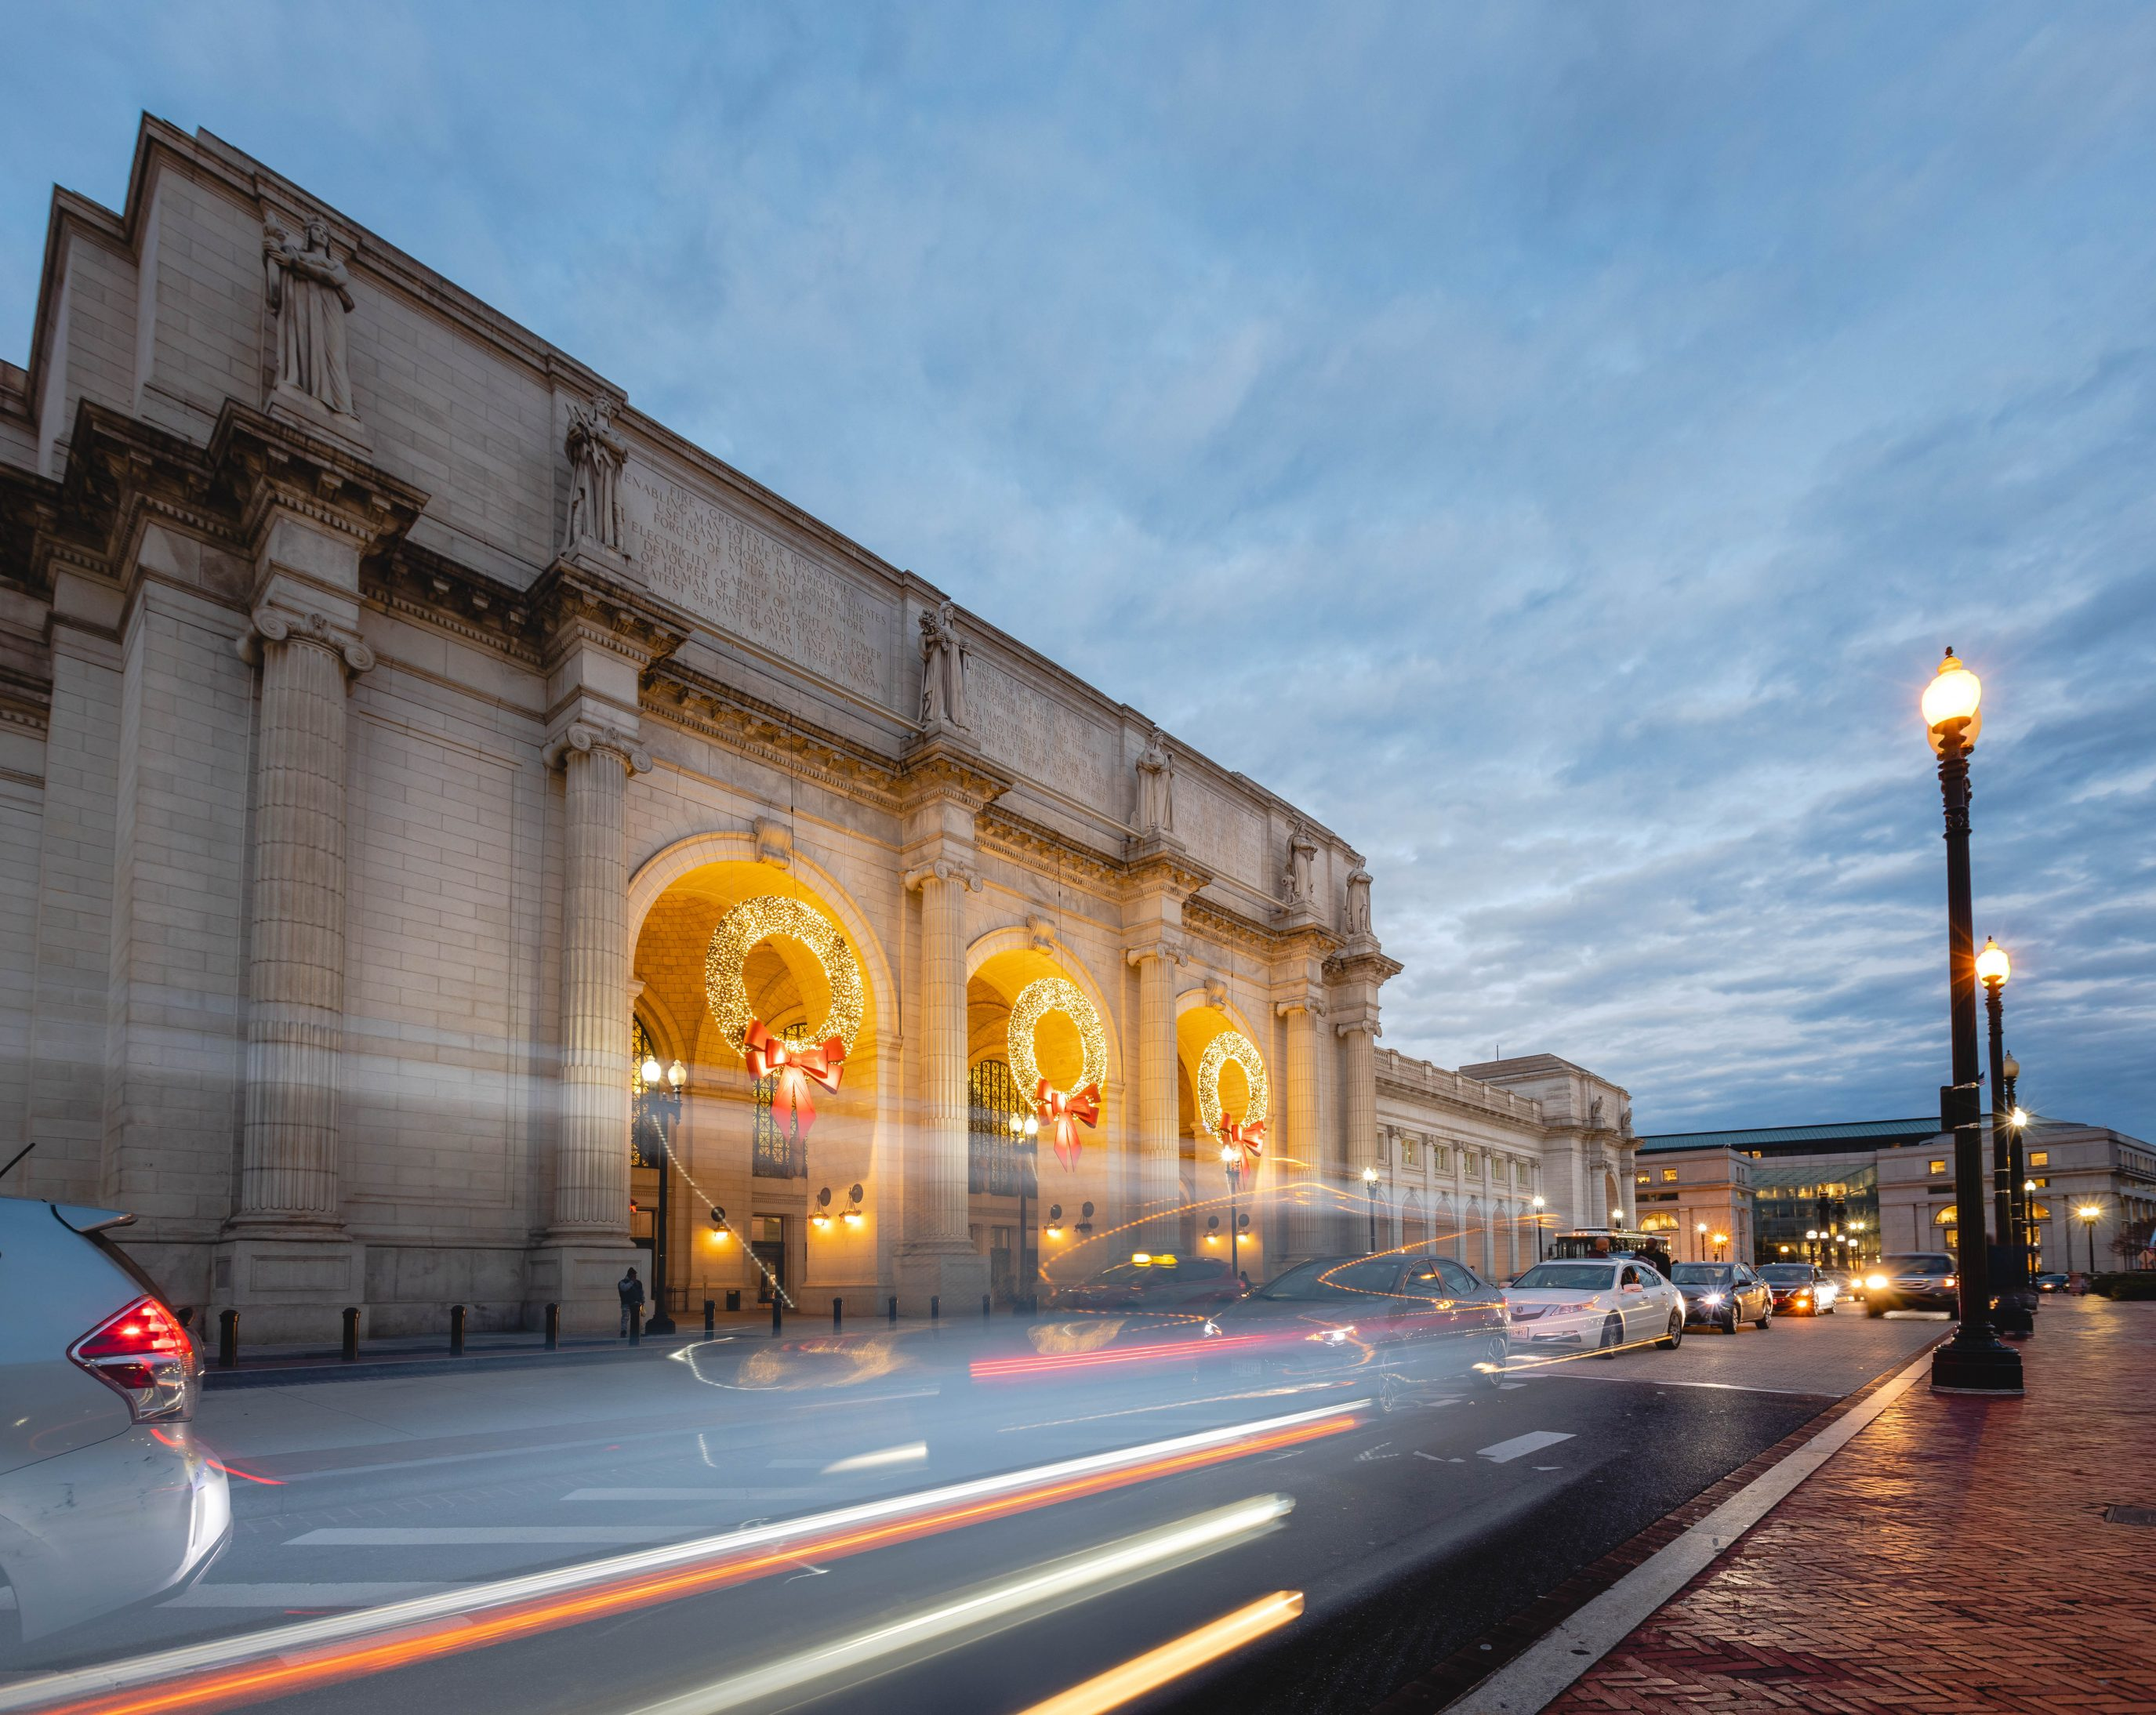 Christmas Wreaths at Union Station in Washington D.C. (Photos)